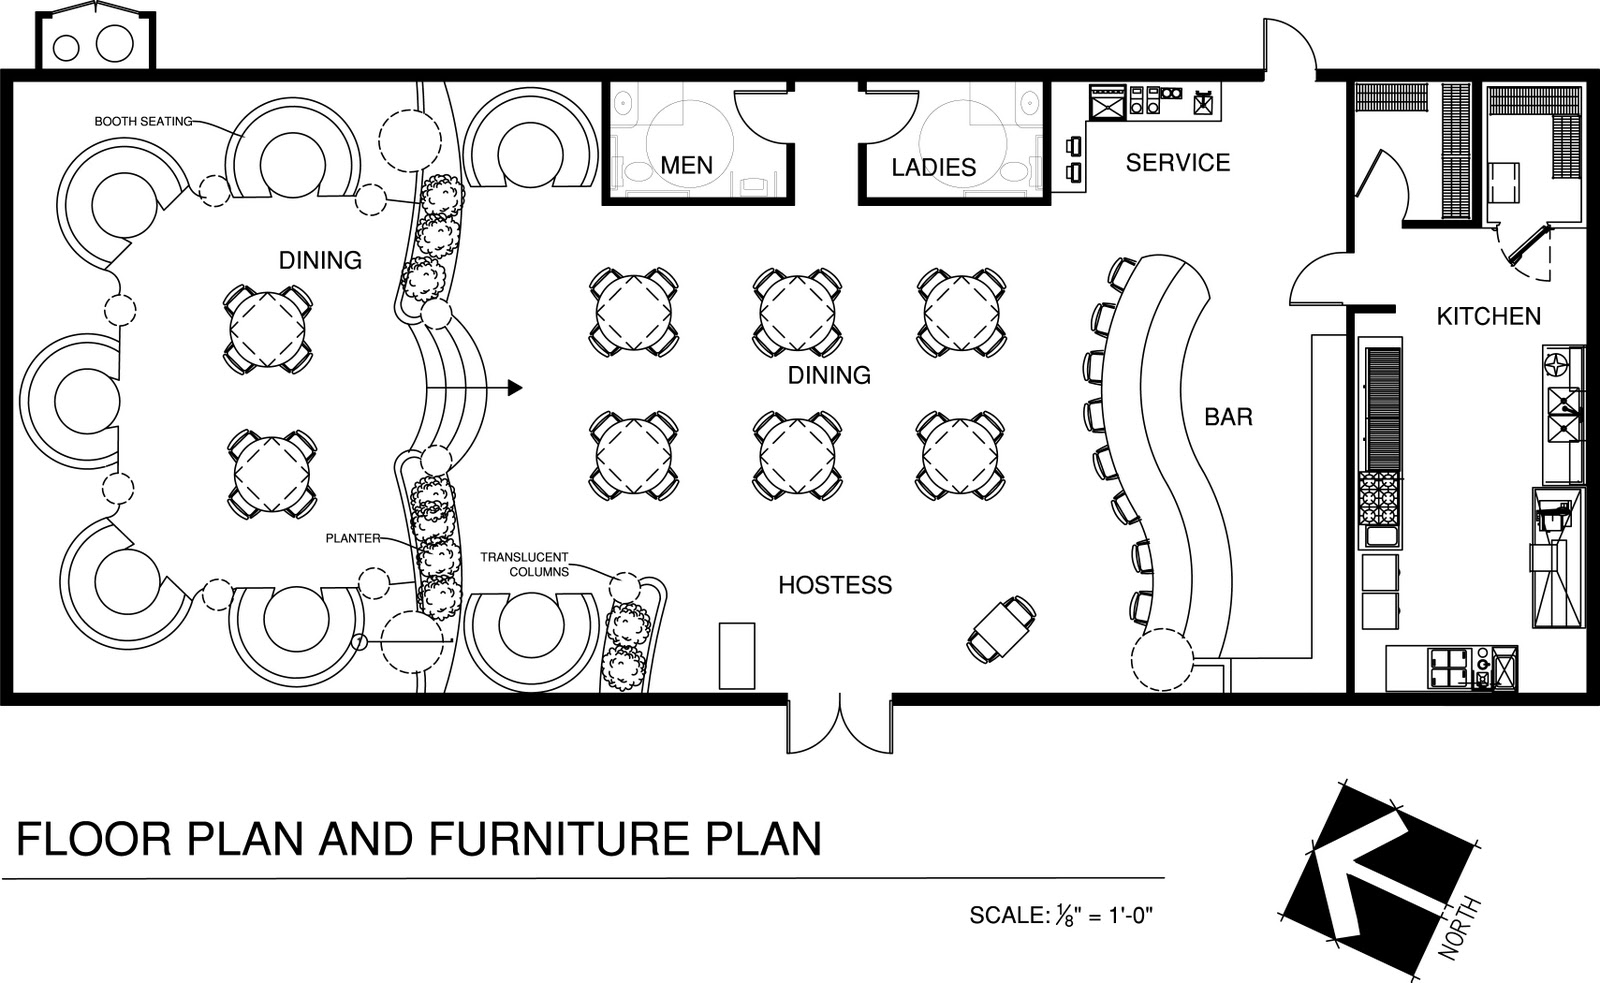 Designing A Restaurant Floor Plan Home Design And Decor